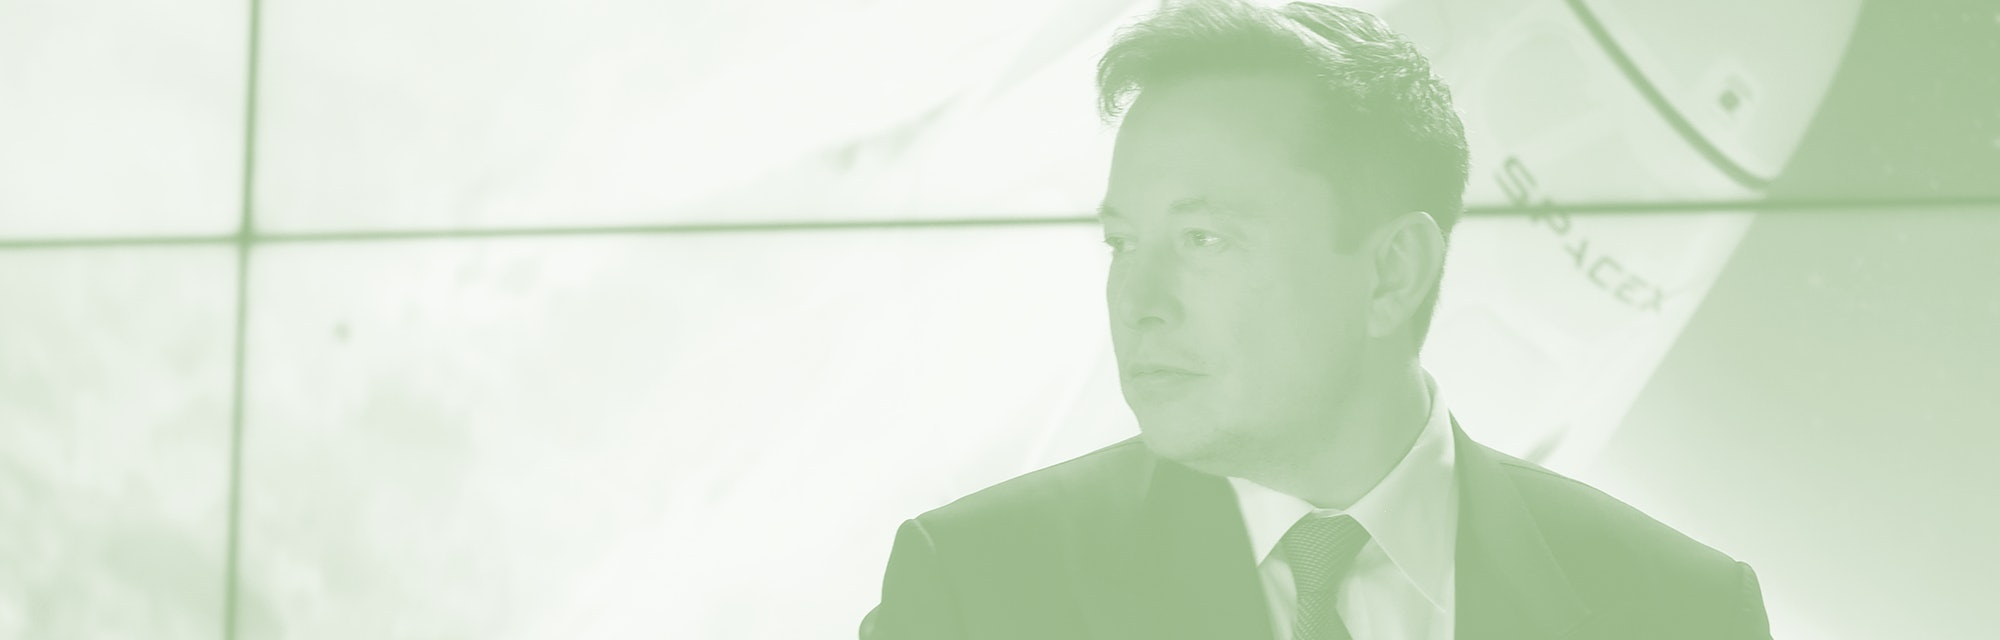 January 19, 2020 - Kennedy Space Center, Florida, United States - SpaceX CEO Elon Musk prepares to d...